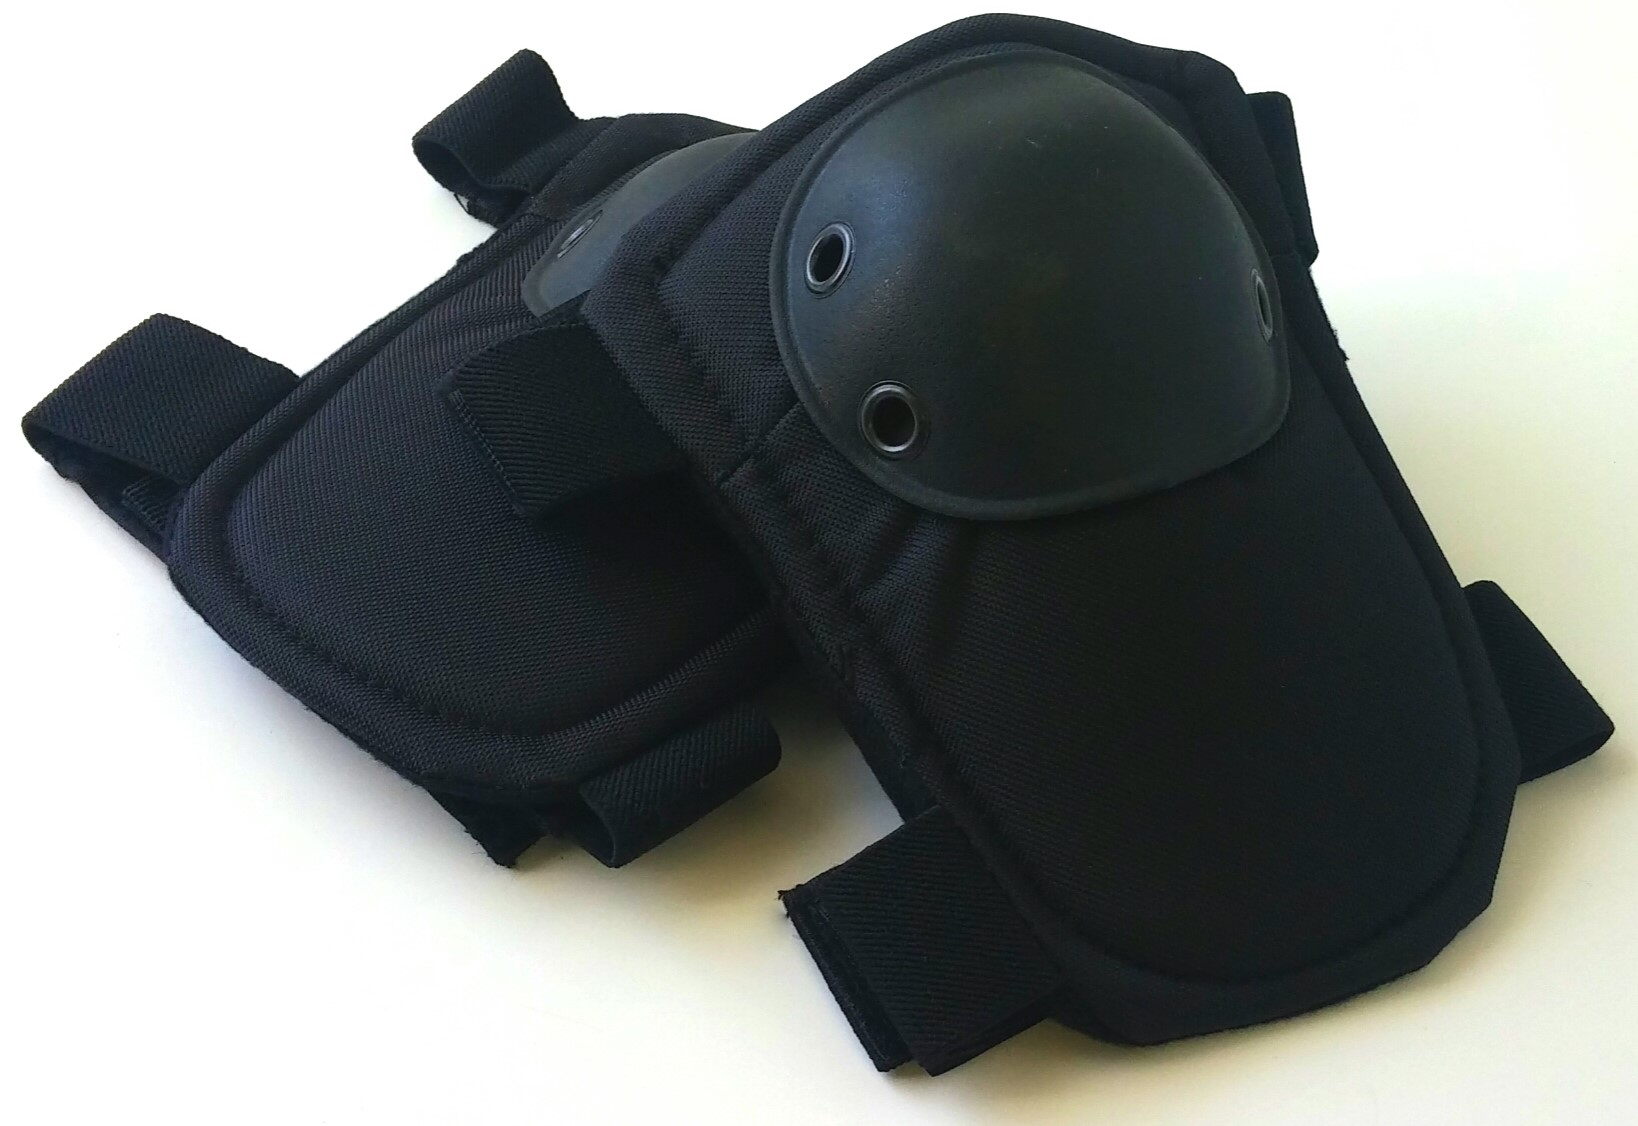 Black tactical elbow pads